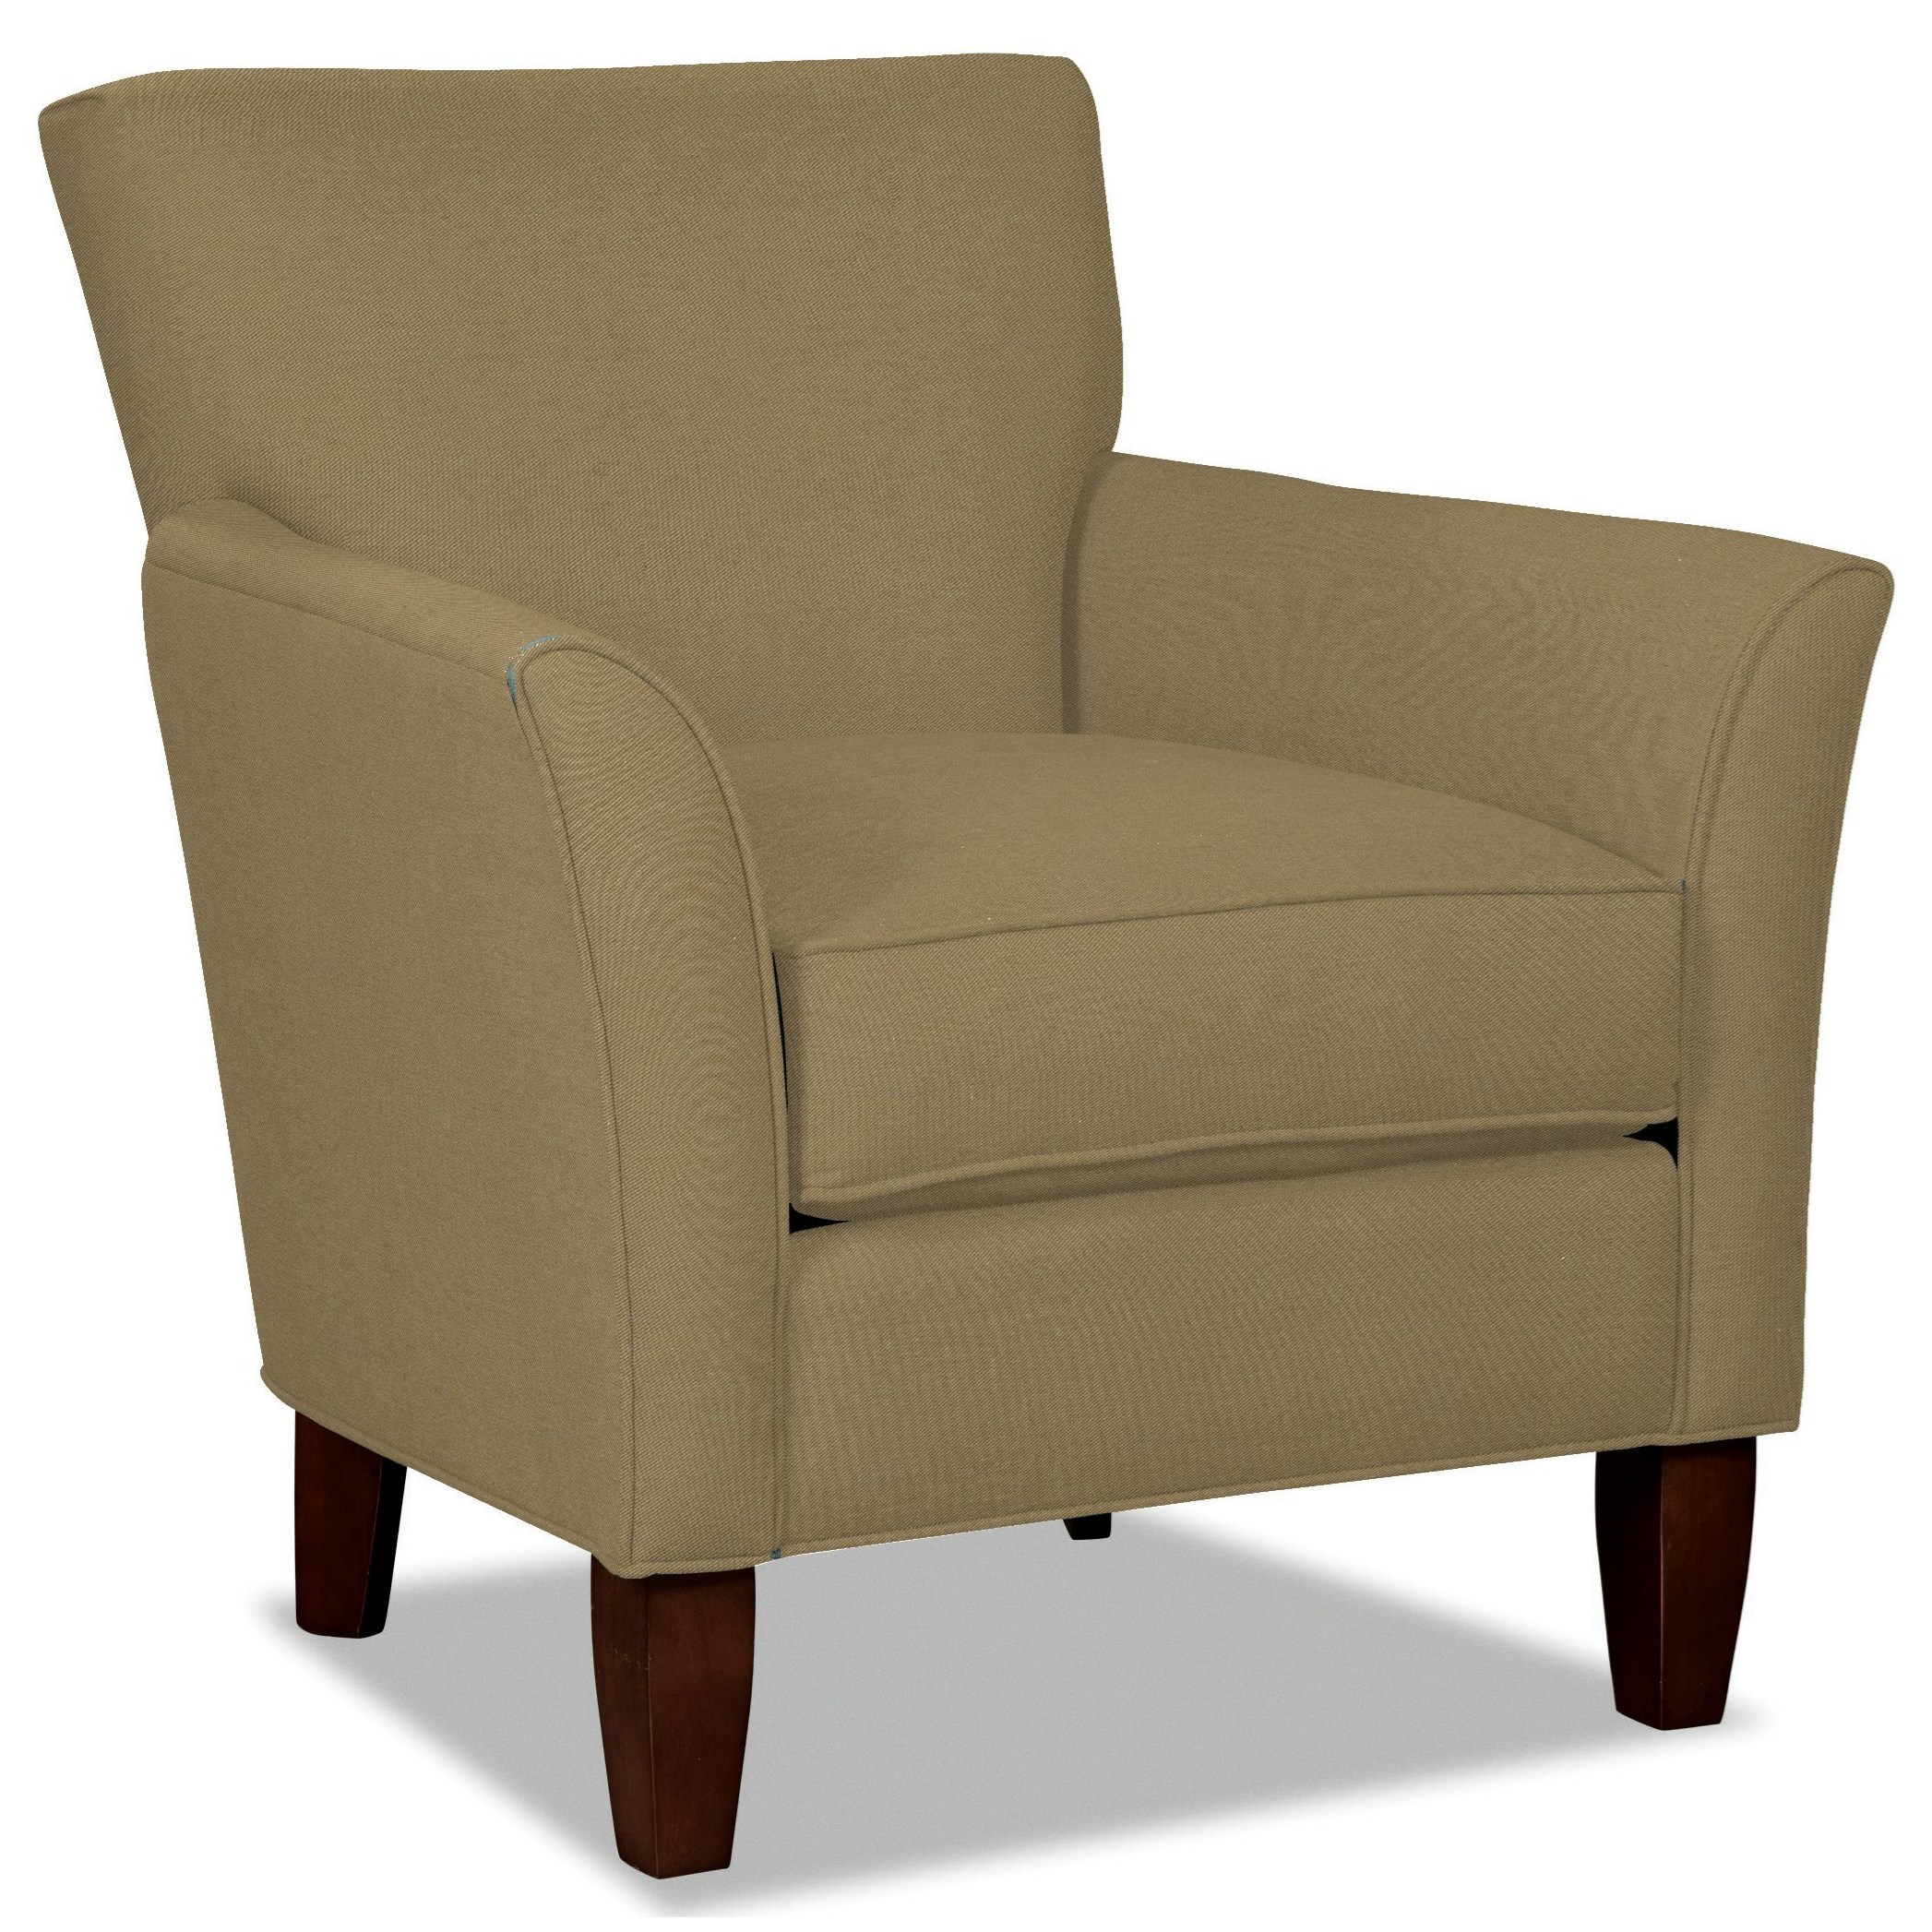 Craftmaster 060110 Accent Chair - Item Number: 060110-TOPSIDER-03